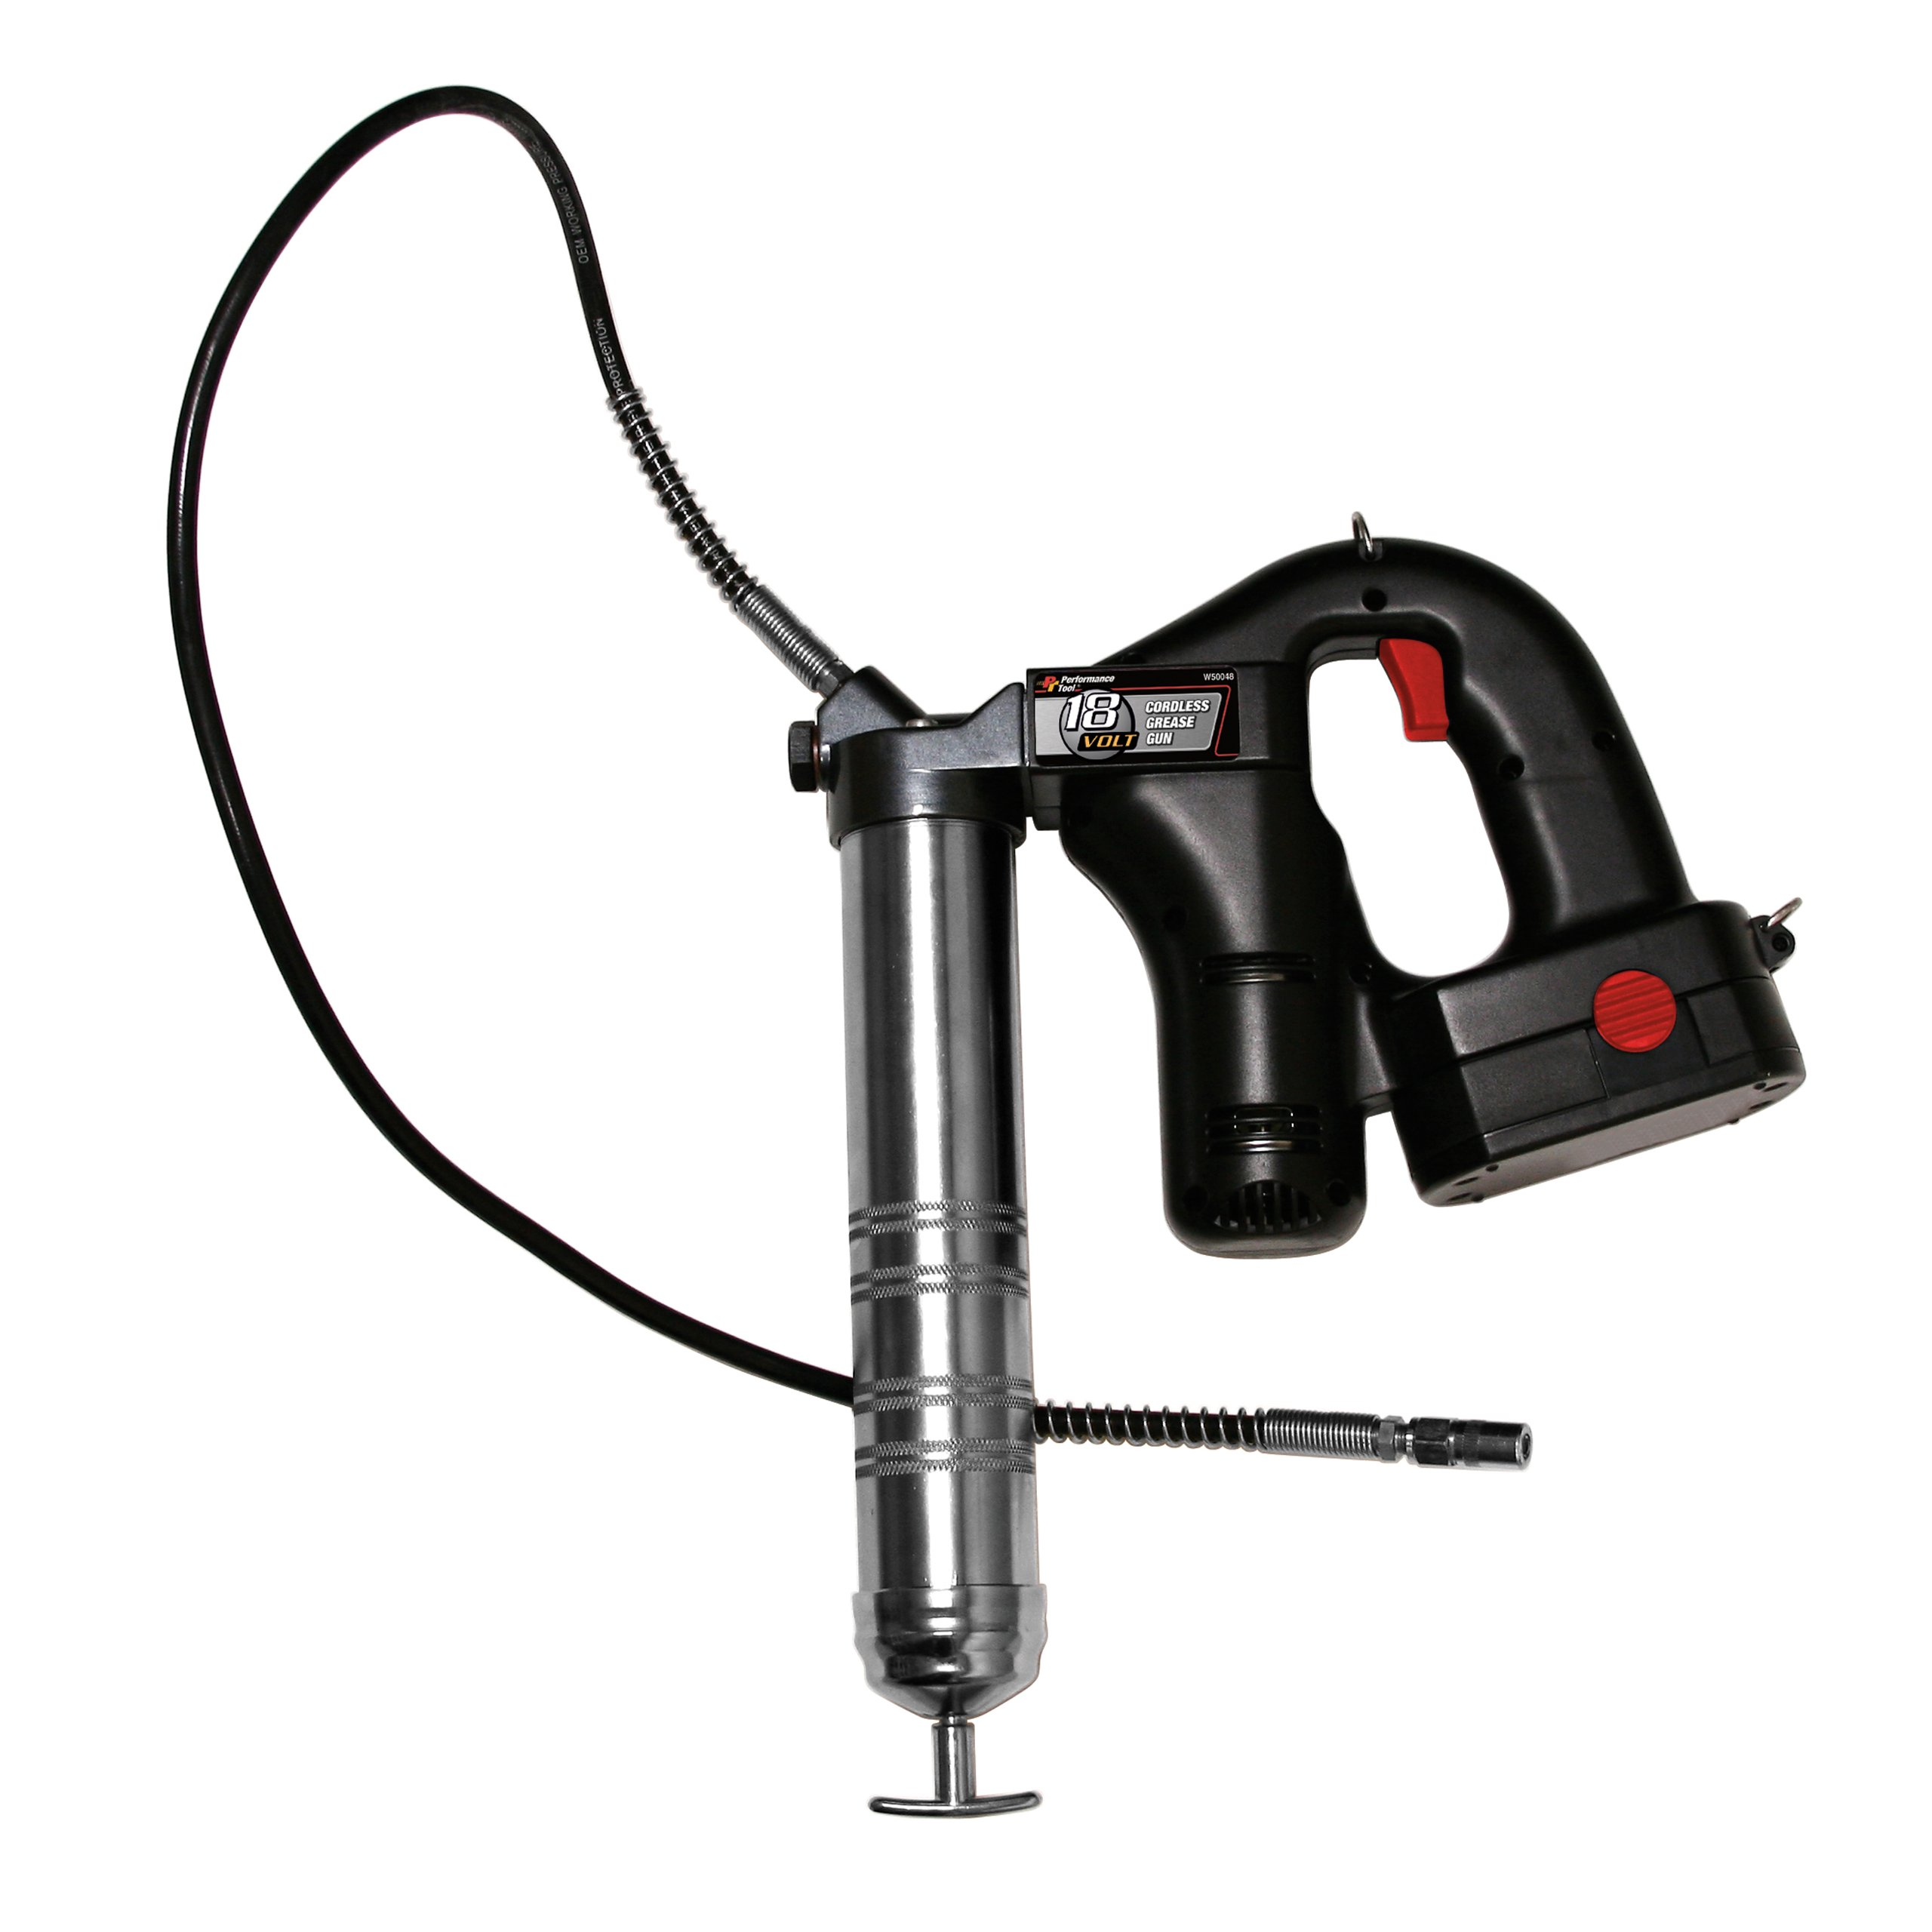 Performance Tool W50048 18-volt Cordless Grease Gun by Performance Tool (Image #2)